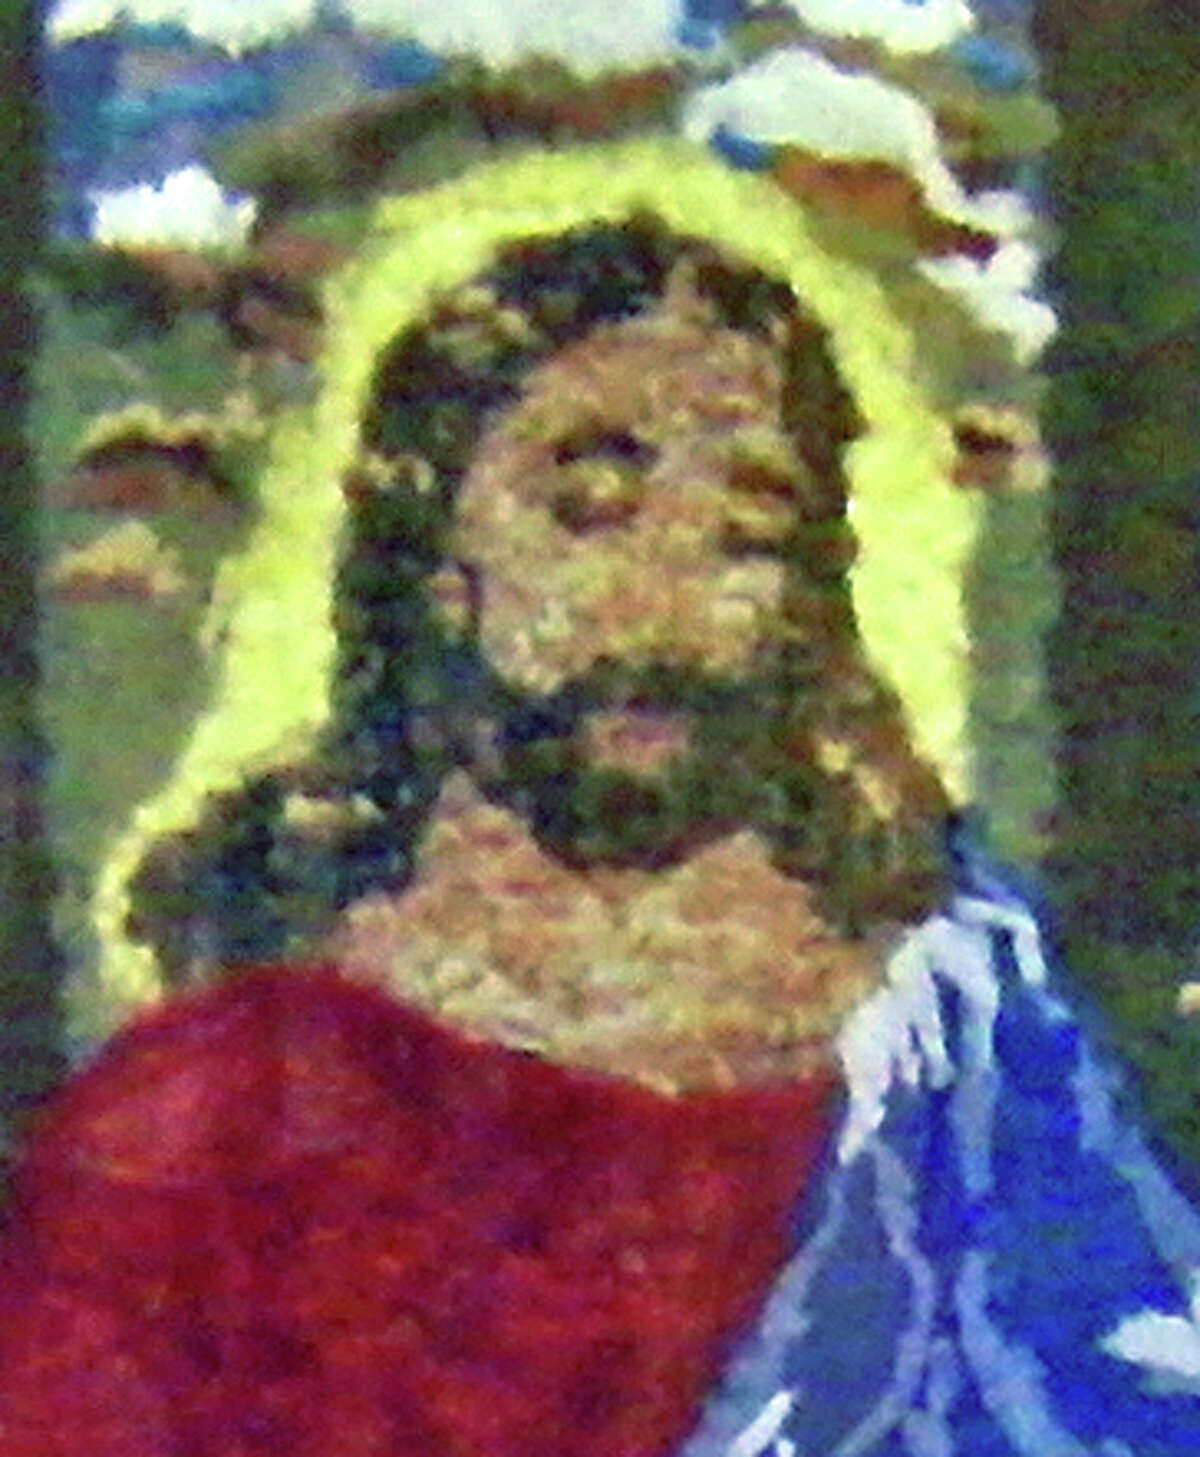 Another interpretation: In this photo provided by Ripley's Believe It or Not shows Jesus on a replica of Leonardo da Vinci's mural,